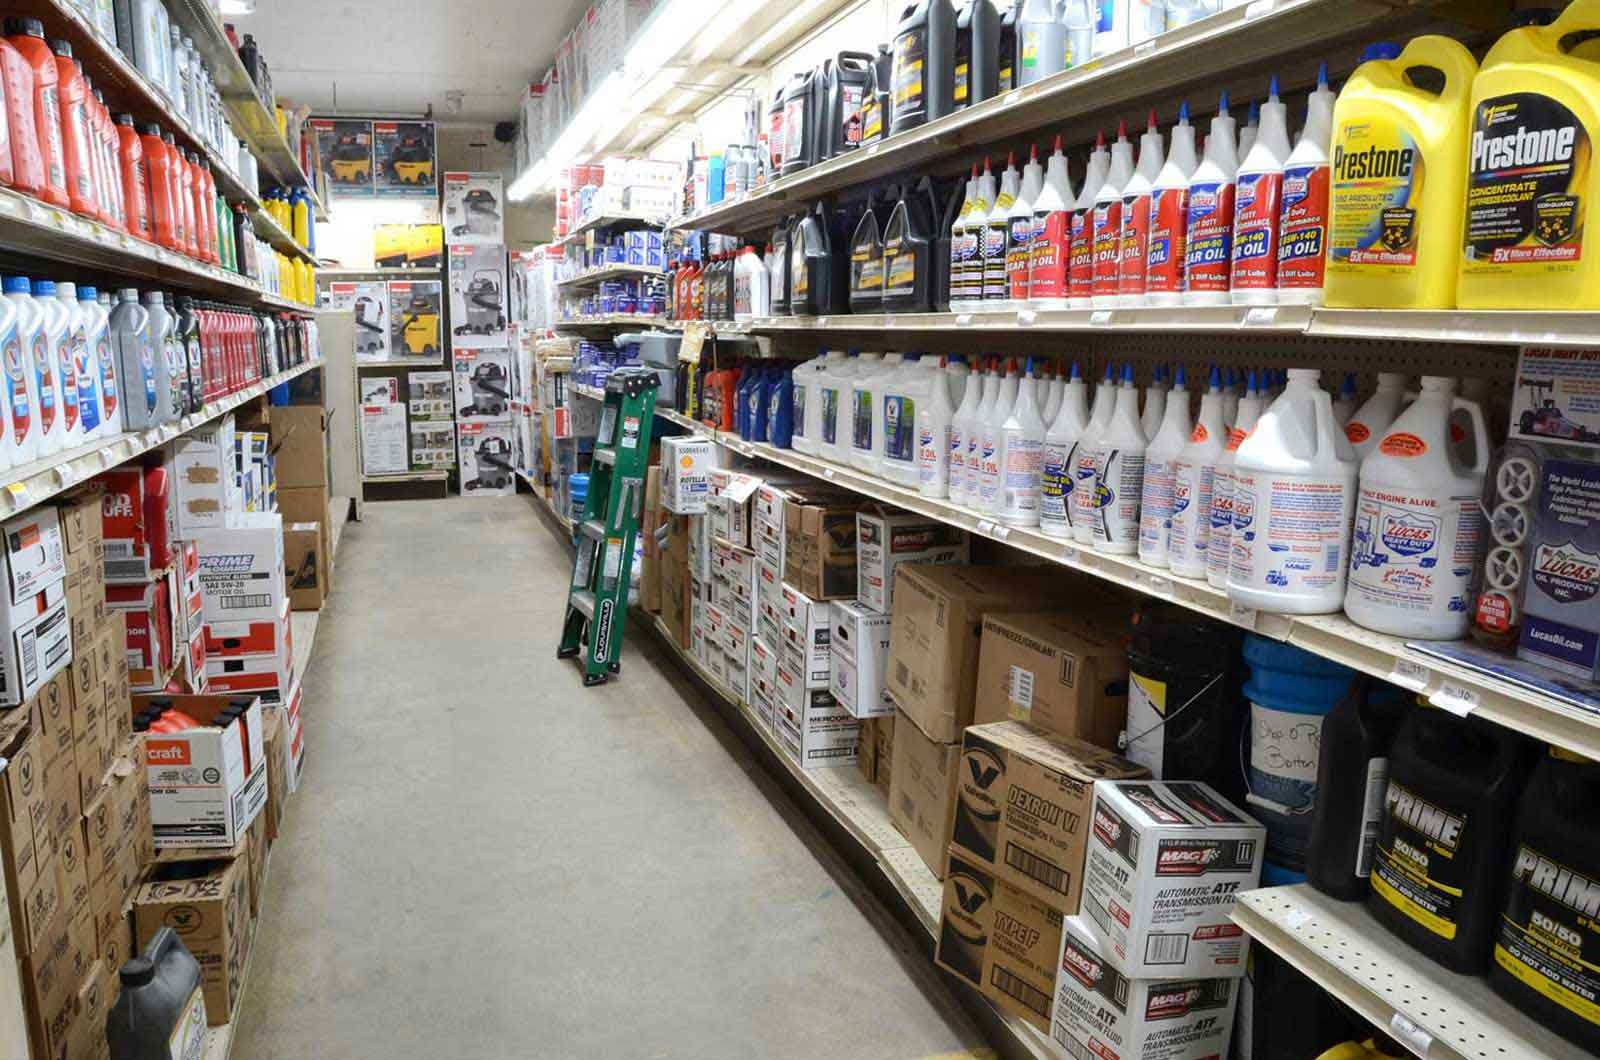 Cleaners & Solvents